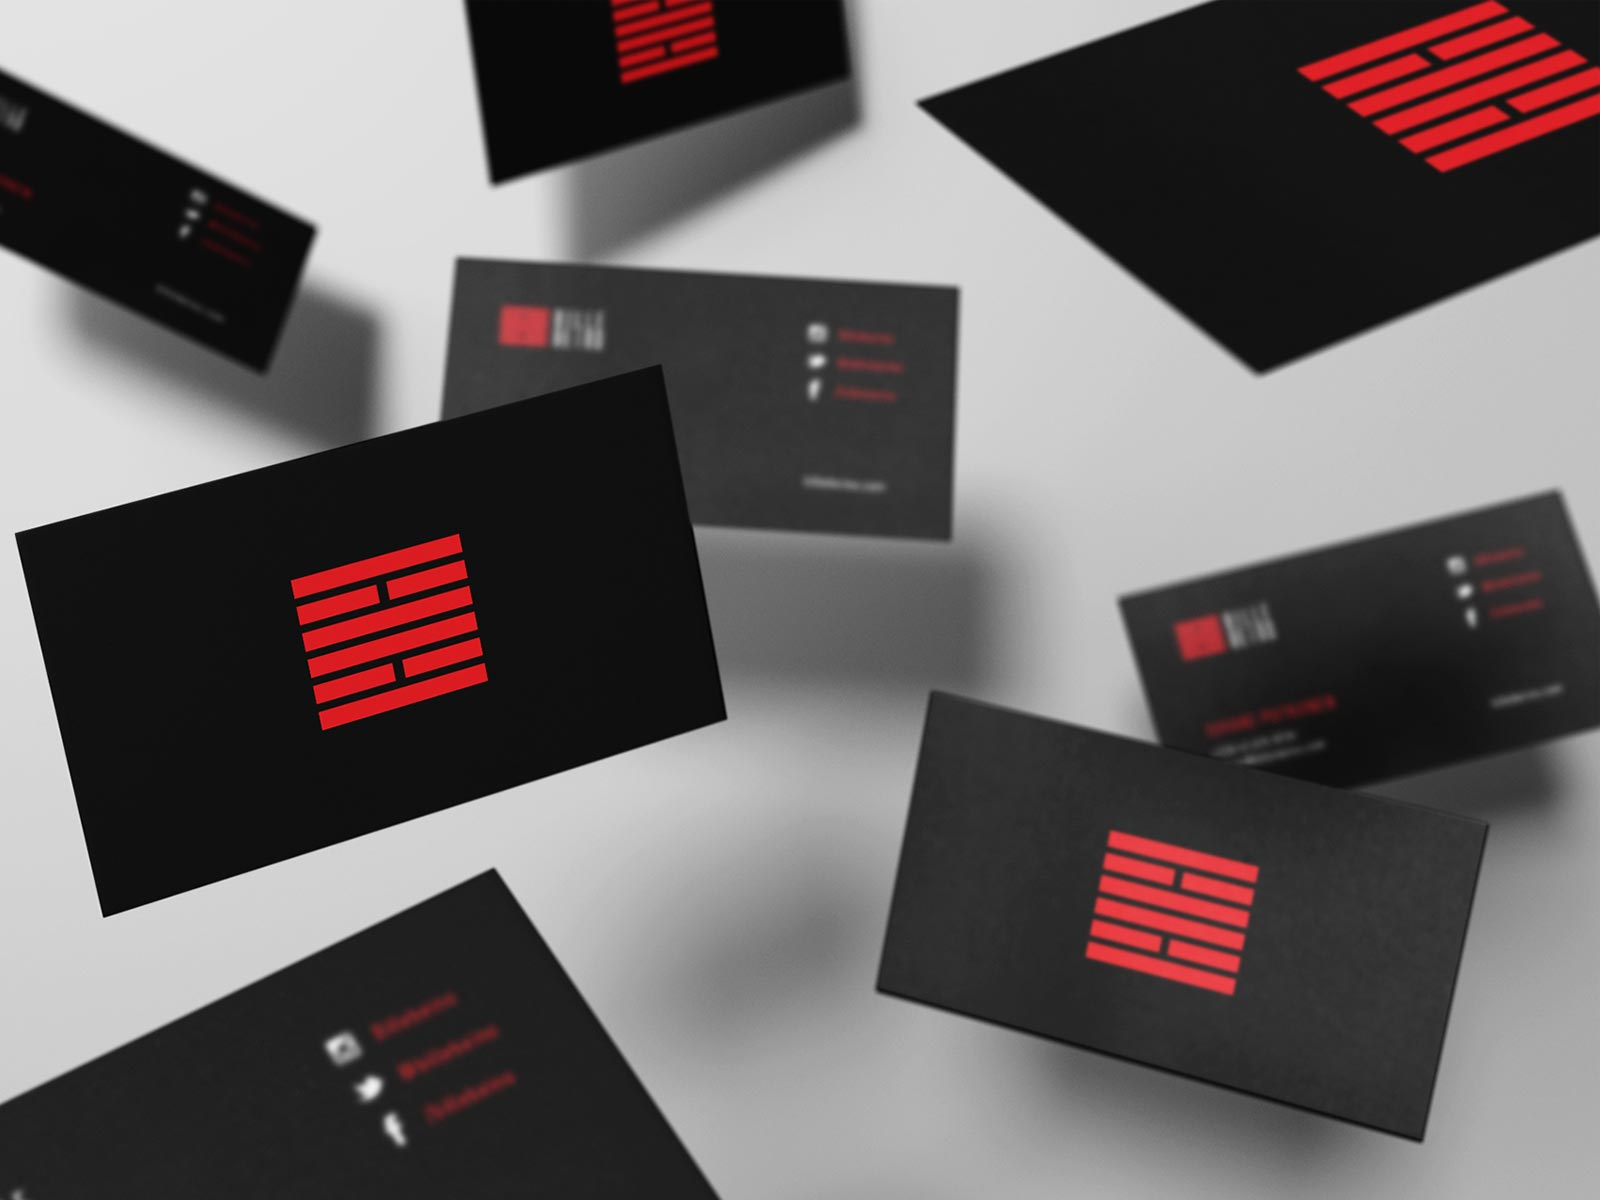 Billebeino business cards branding logo design